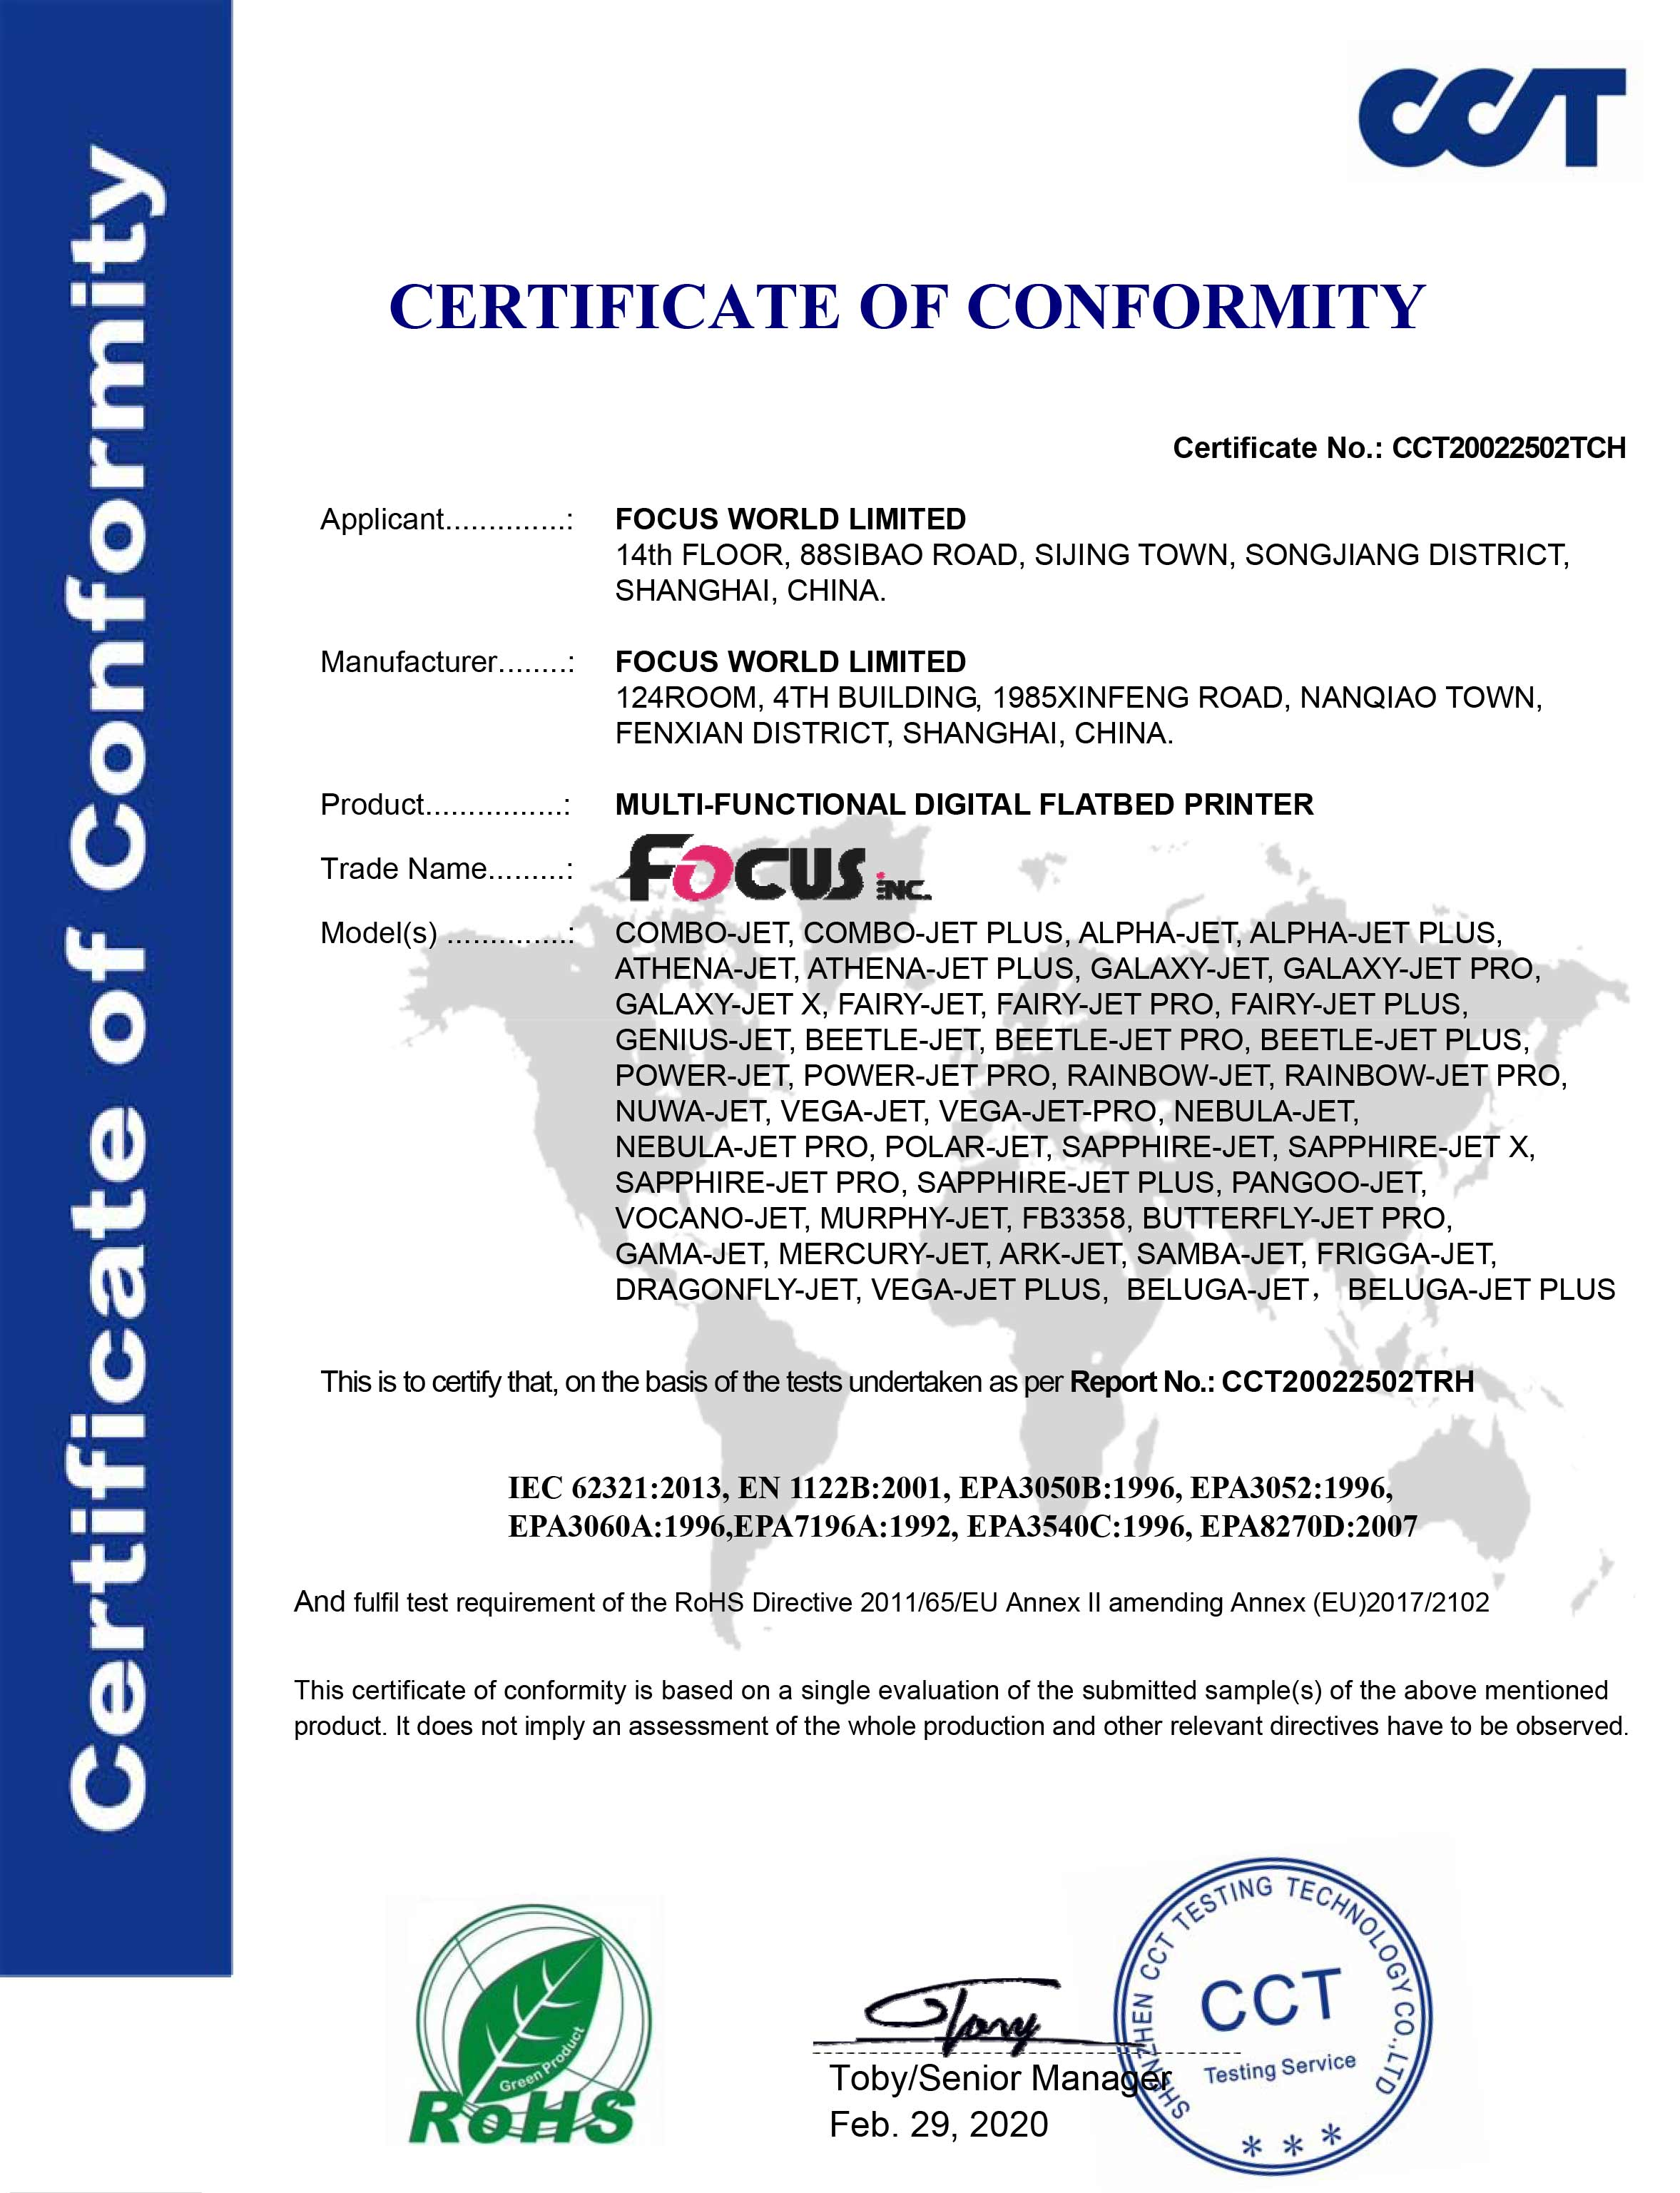 Focus Digital Industrial Certificate-ROHS1